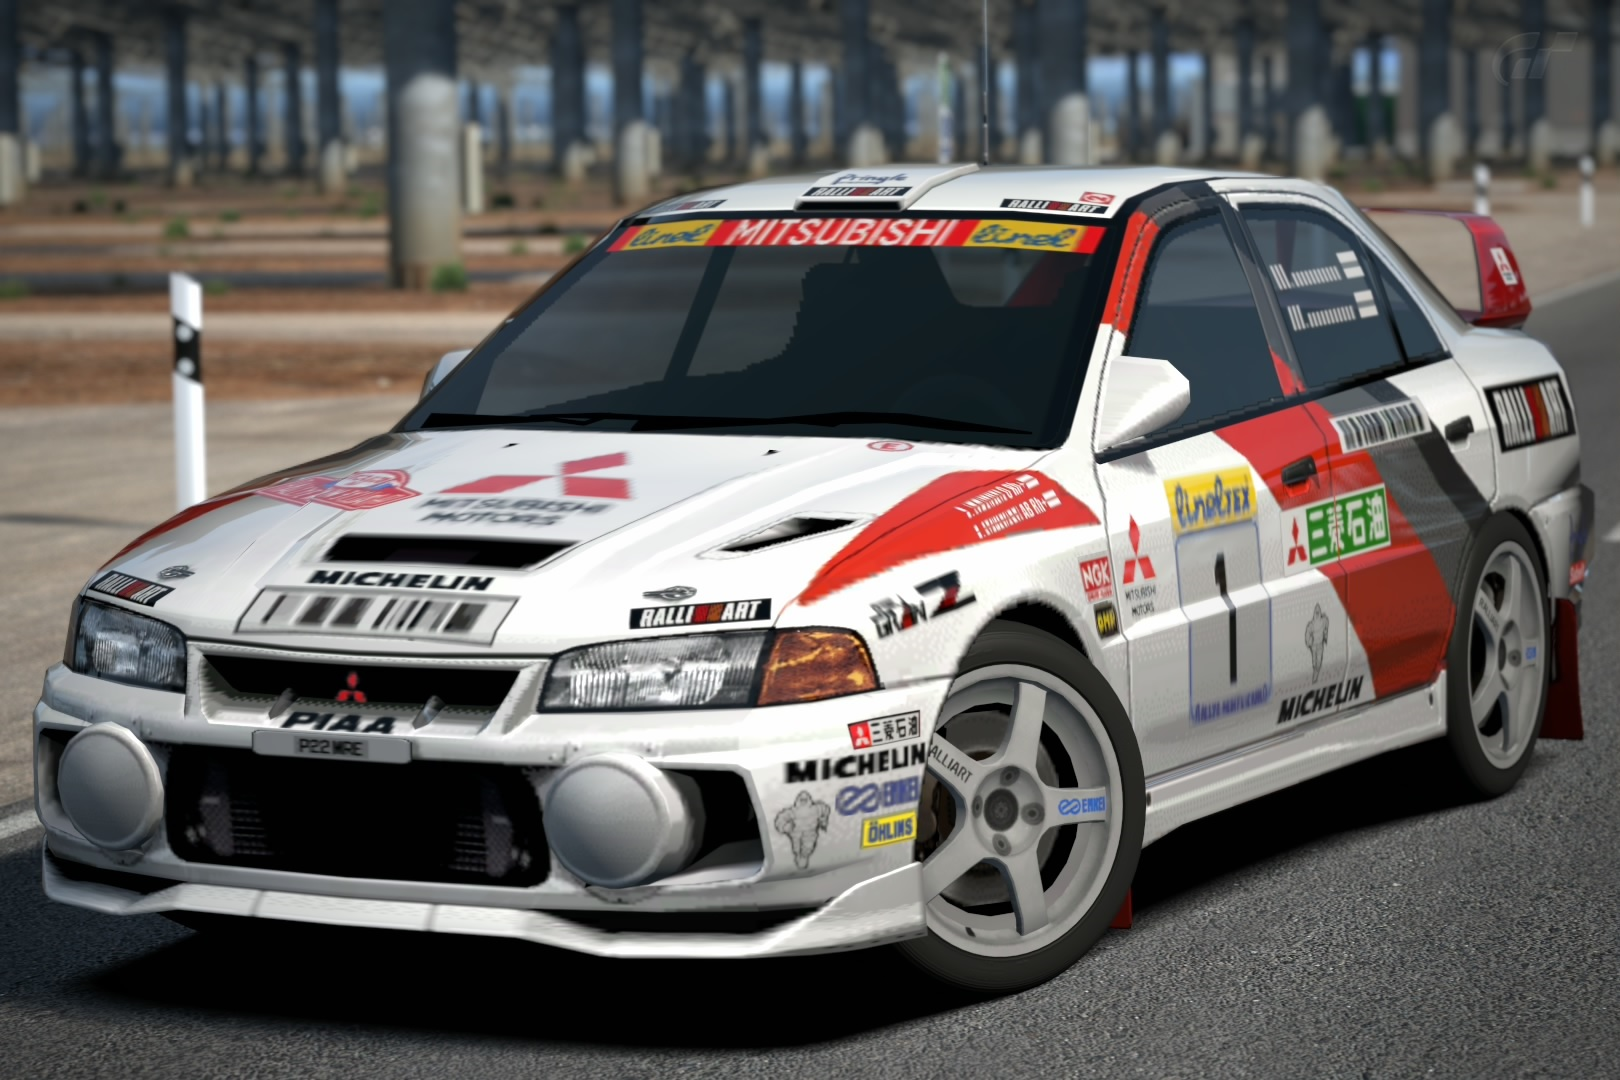 Mitsubishi Lancer Evolution IV Rally Car '97